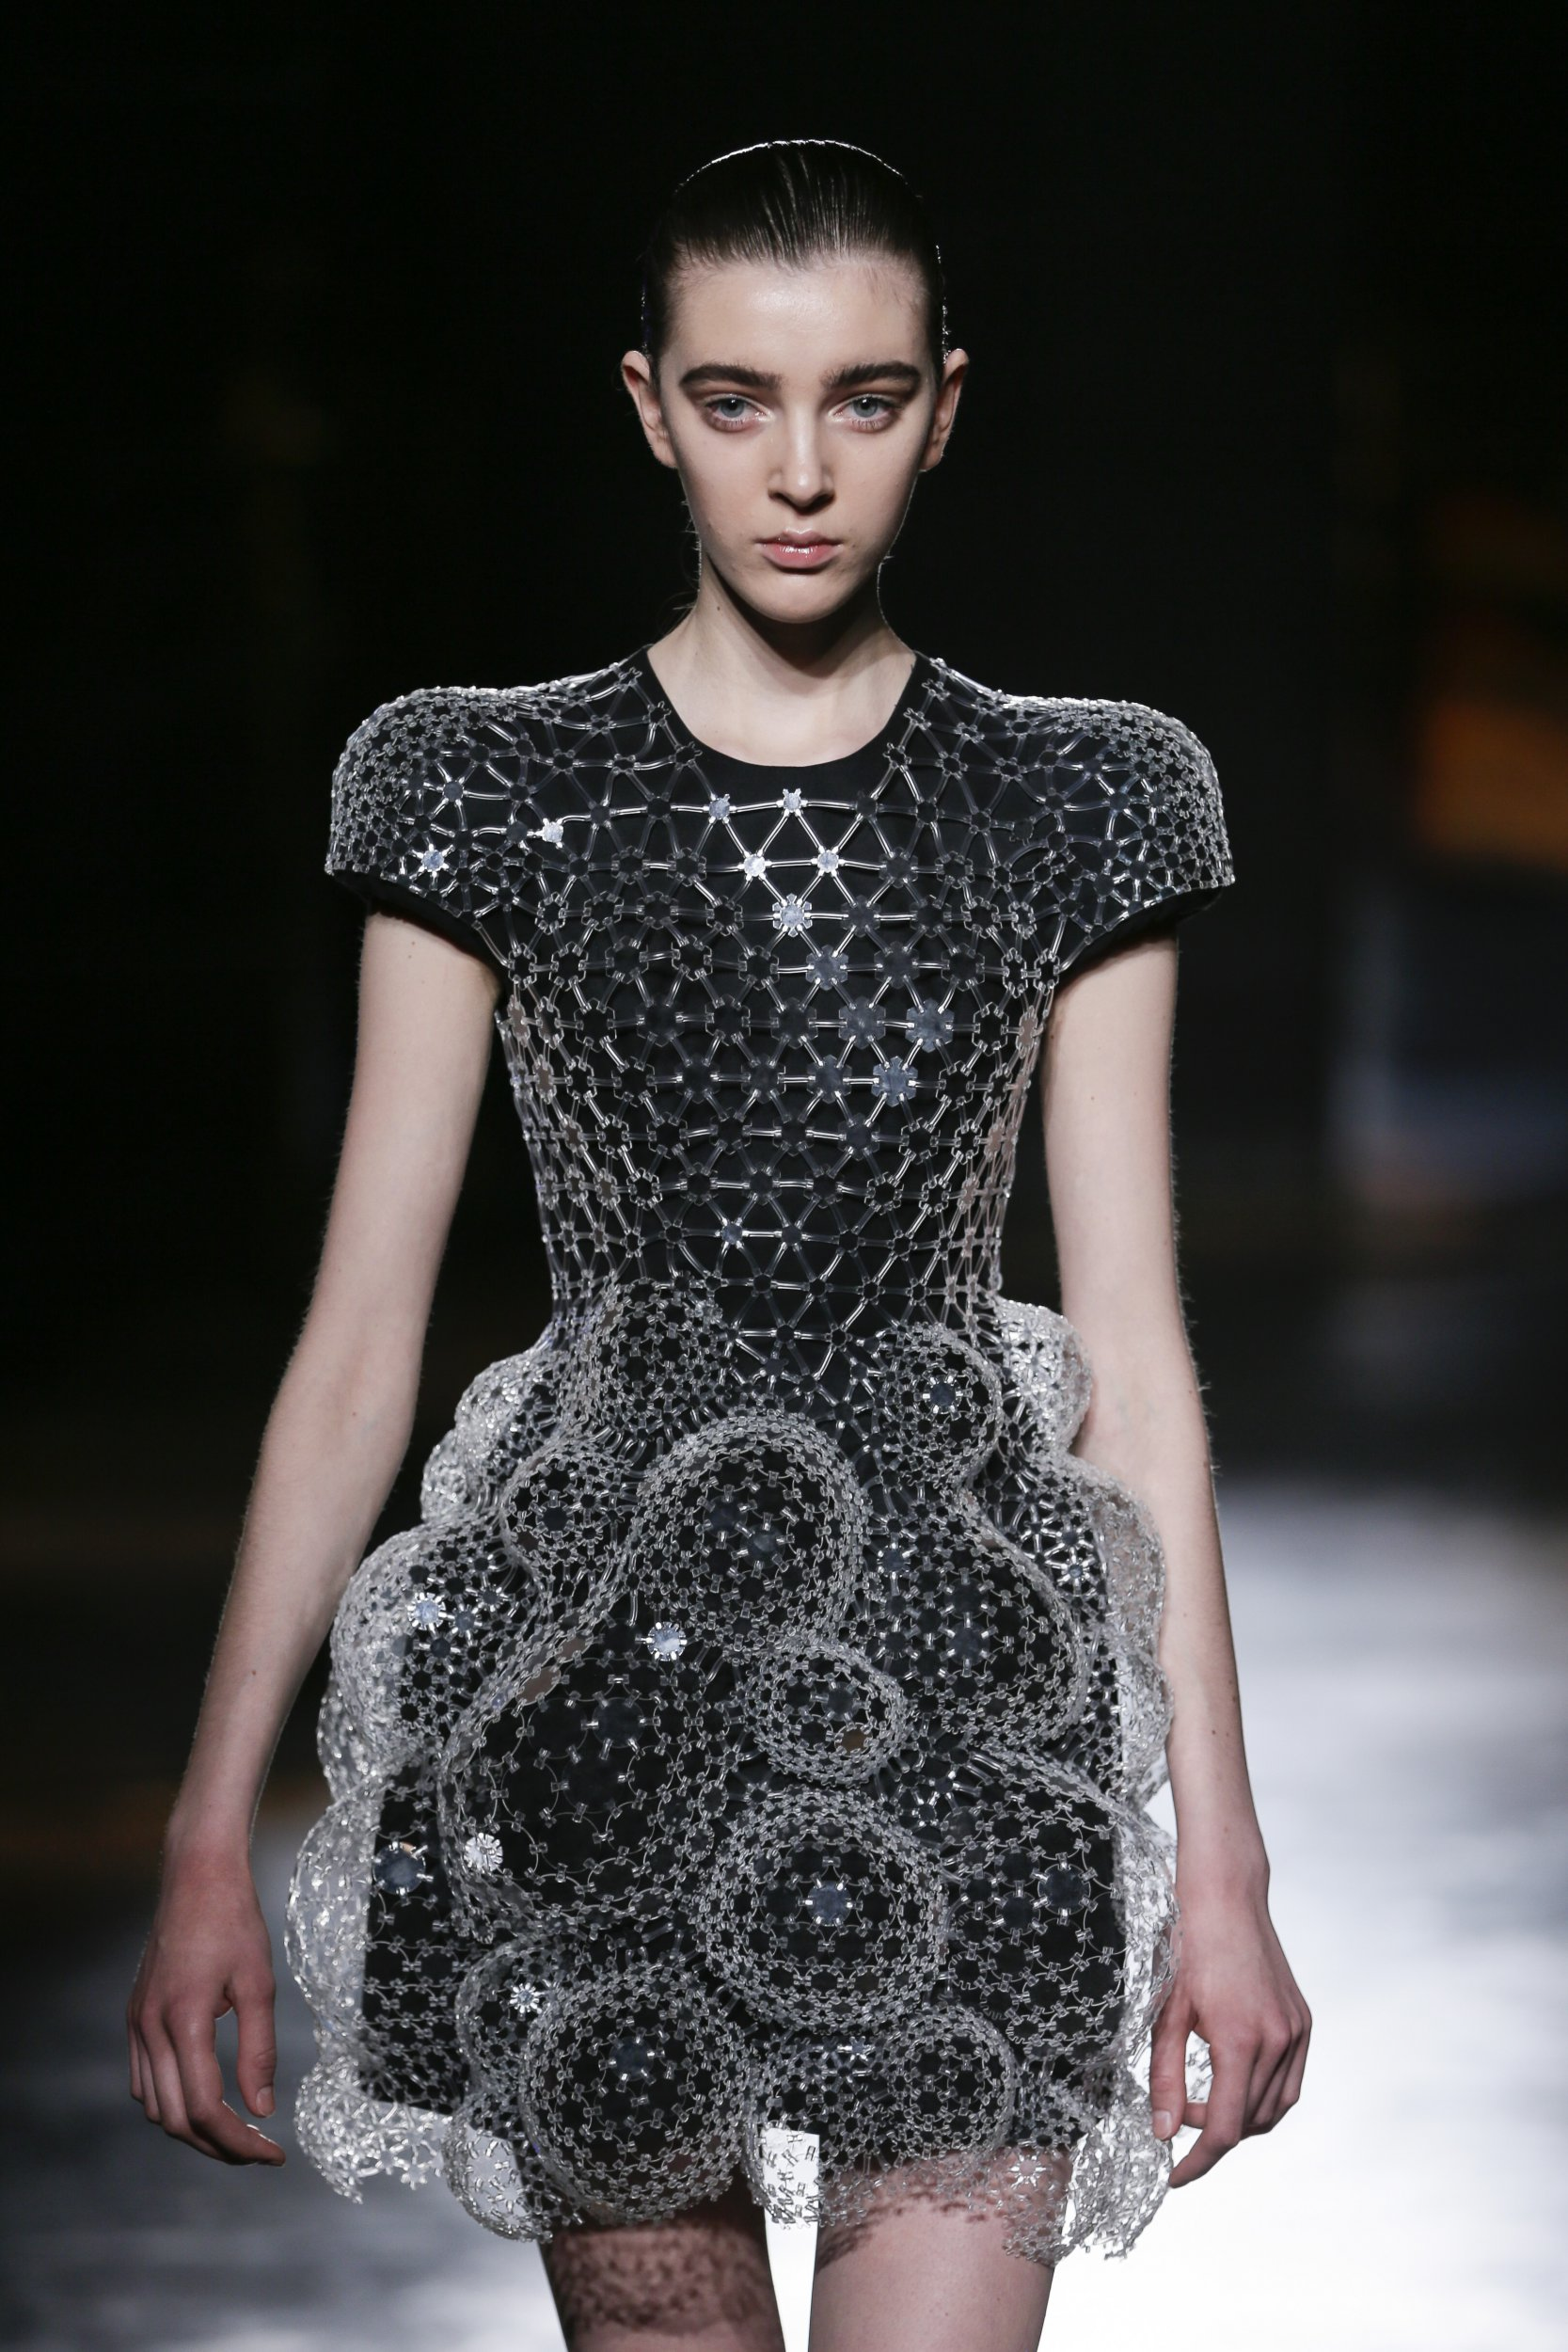 57359059d09e LUCID - For her Lucid collection the Dutch designer Iris van Herpen  explores the concept of lucid dreaming. Within a lucid dream